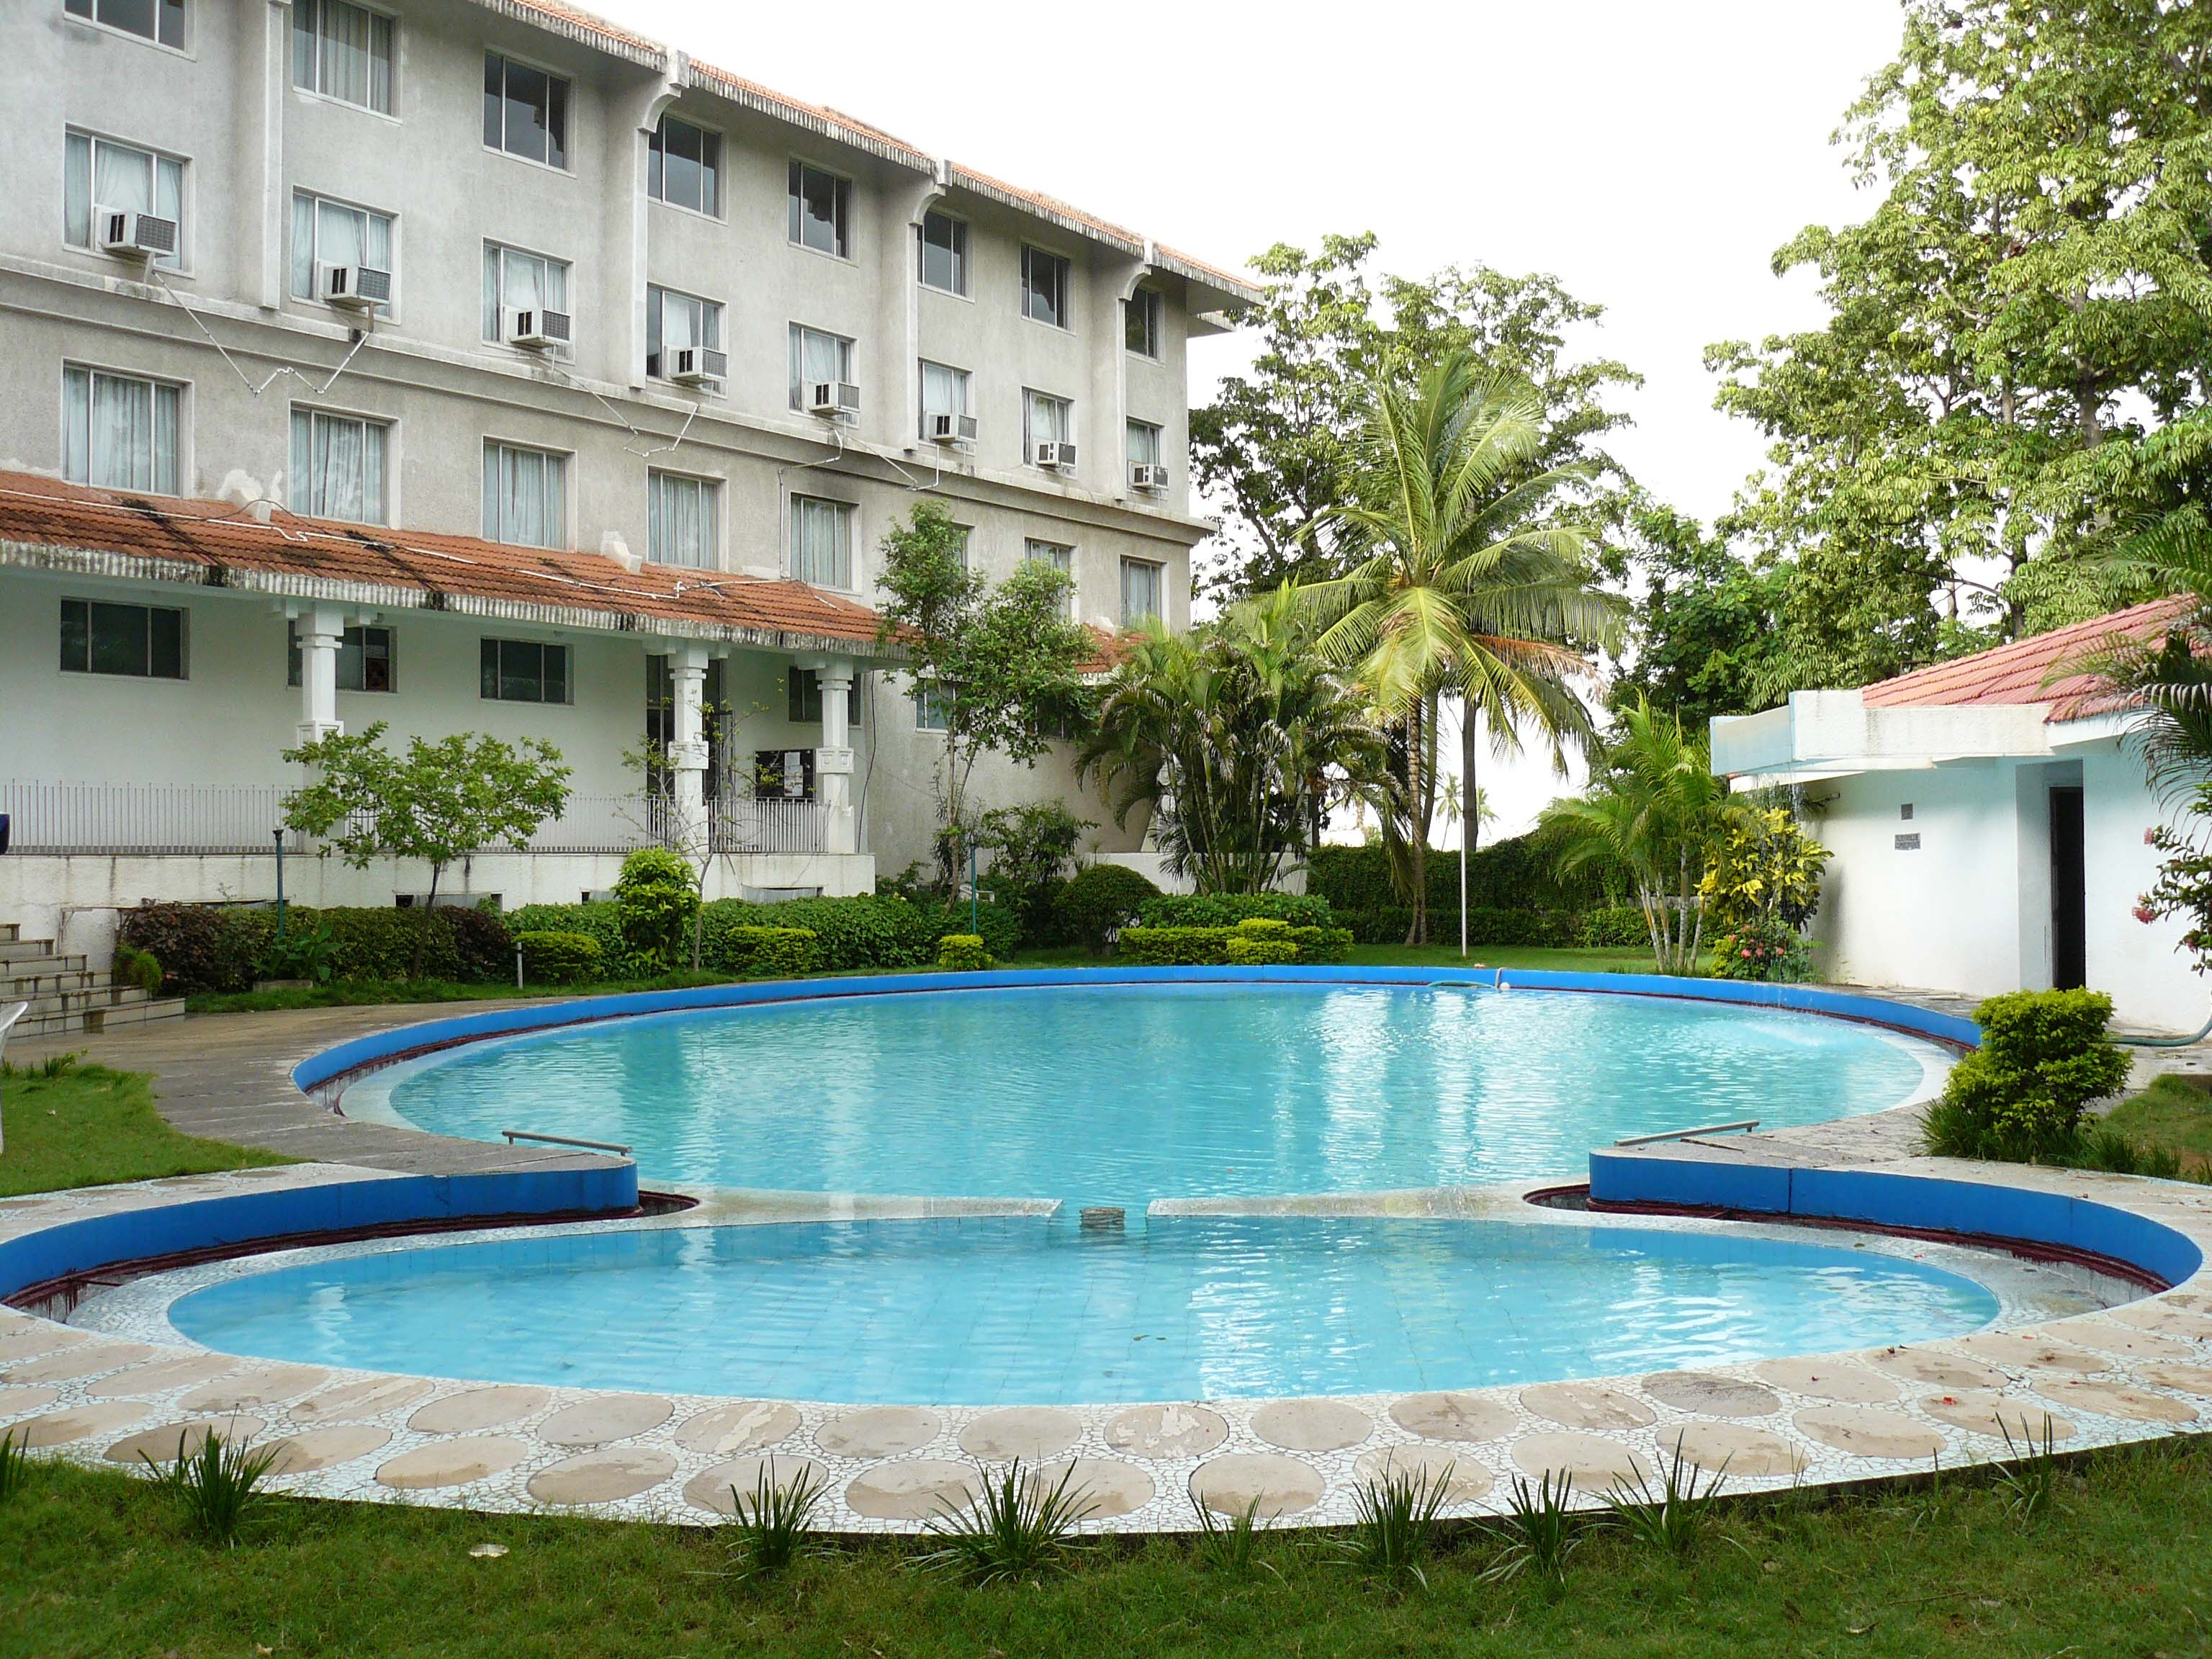 3 star hotels in bangalore india